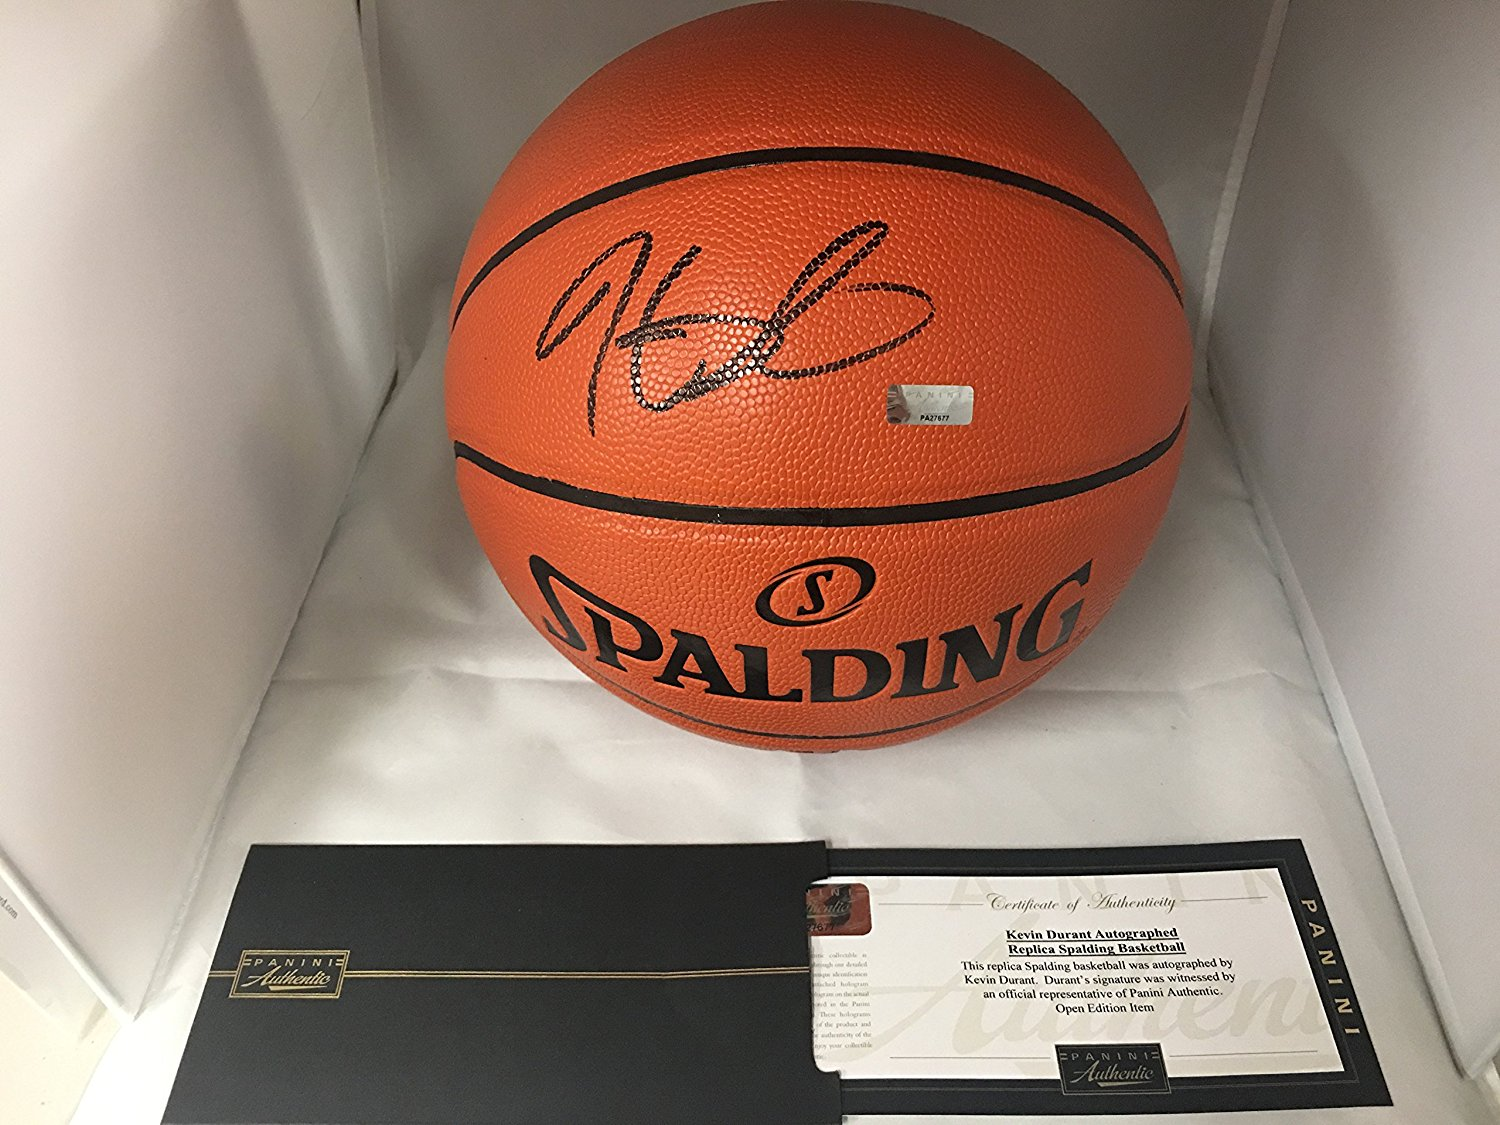 sale retailer 9319e d7b4d Kevin Durant Autographed Signed Golden State Warriors Game ...